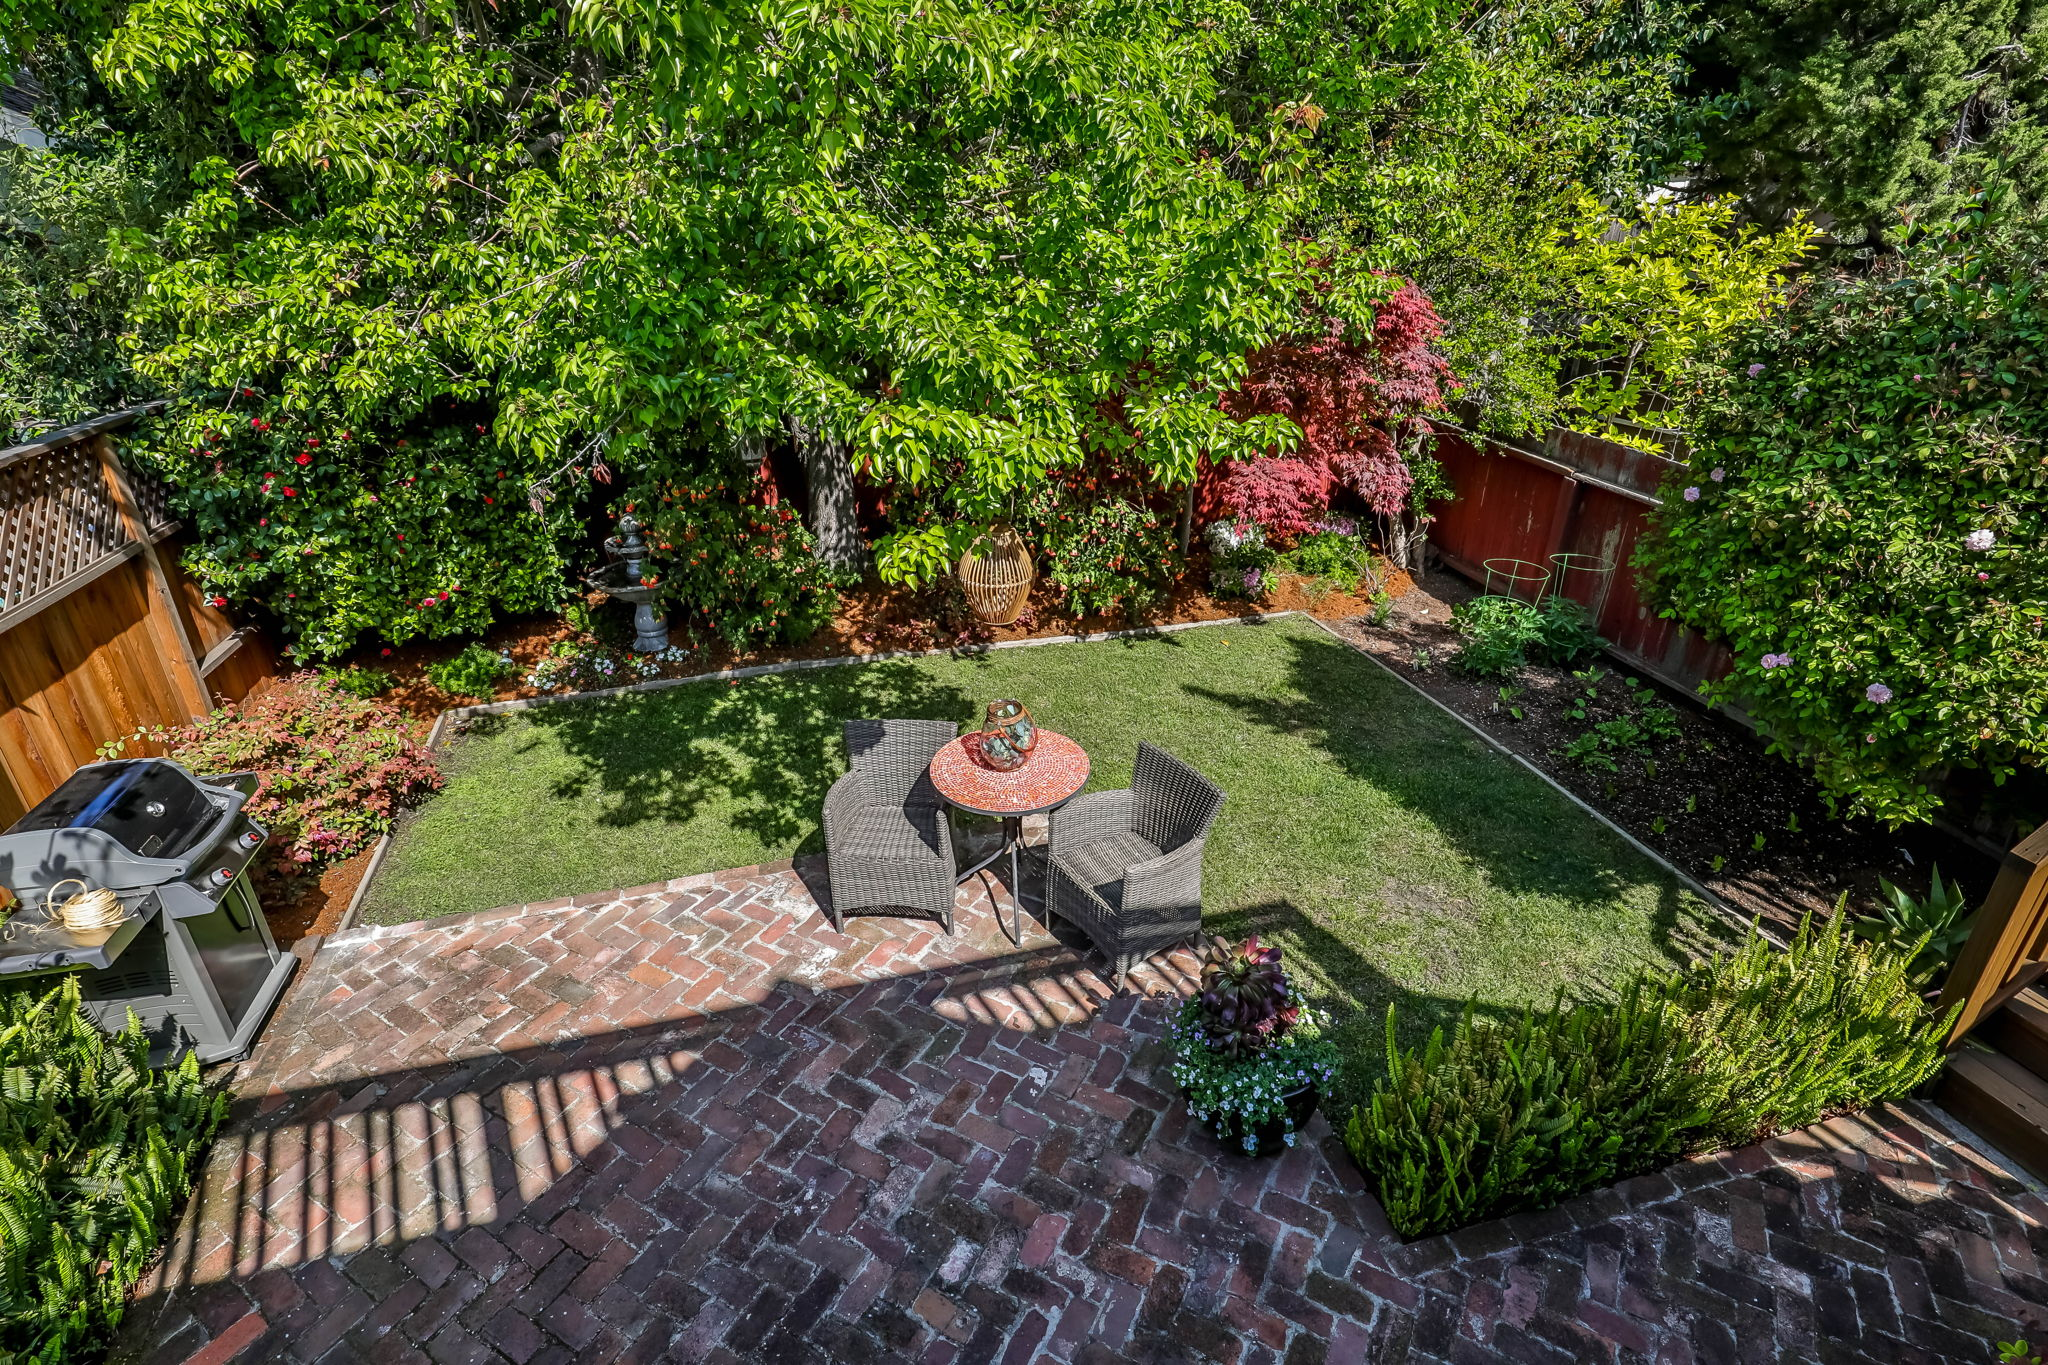 Overview of Backyard